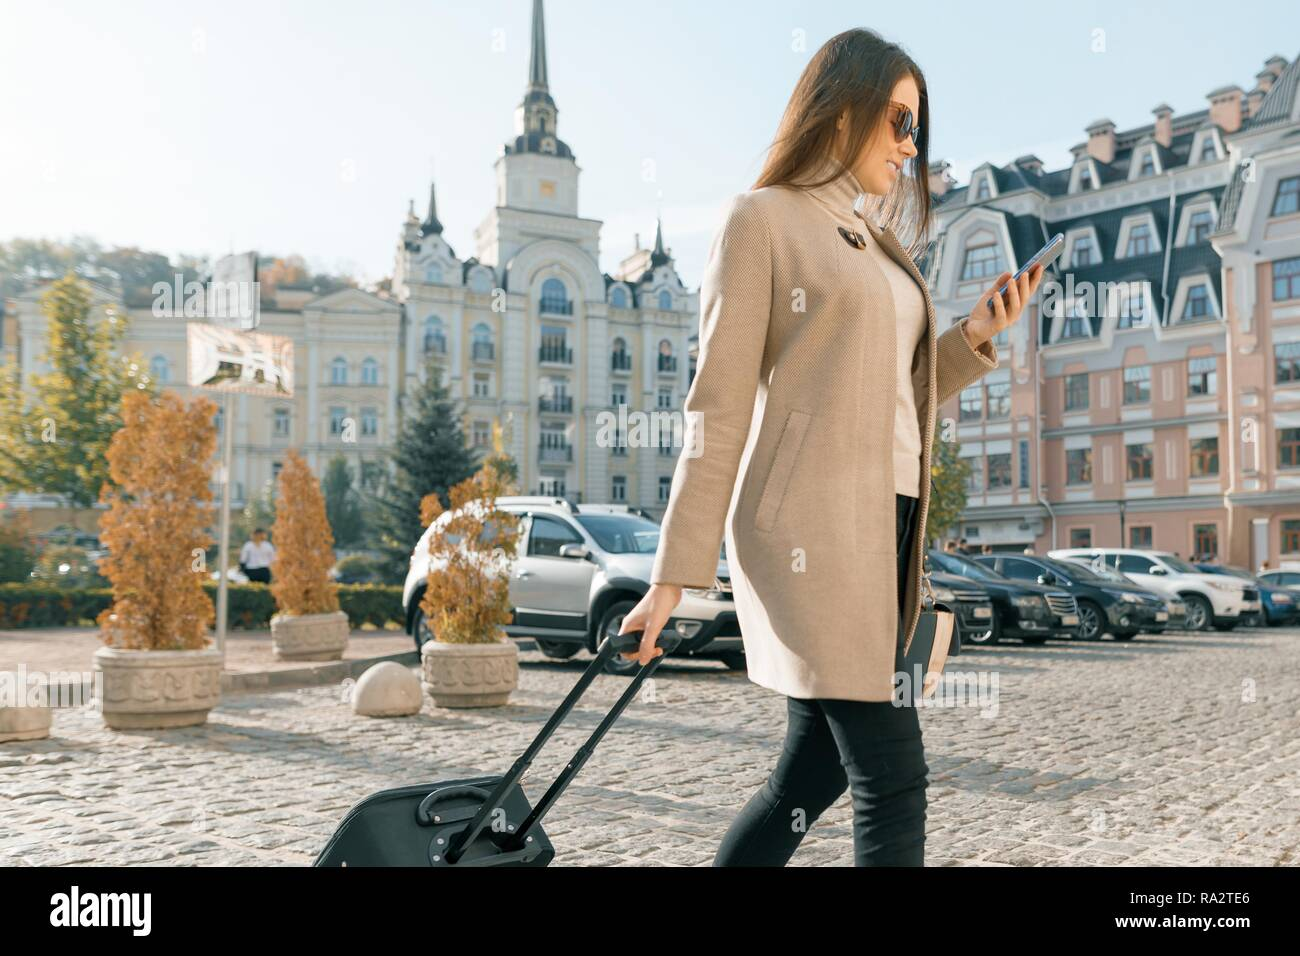 Young beautiful woman walks along city street with travel suitcase and cell phone. Fashionable brunette girl smiling. - Stock Image